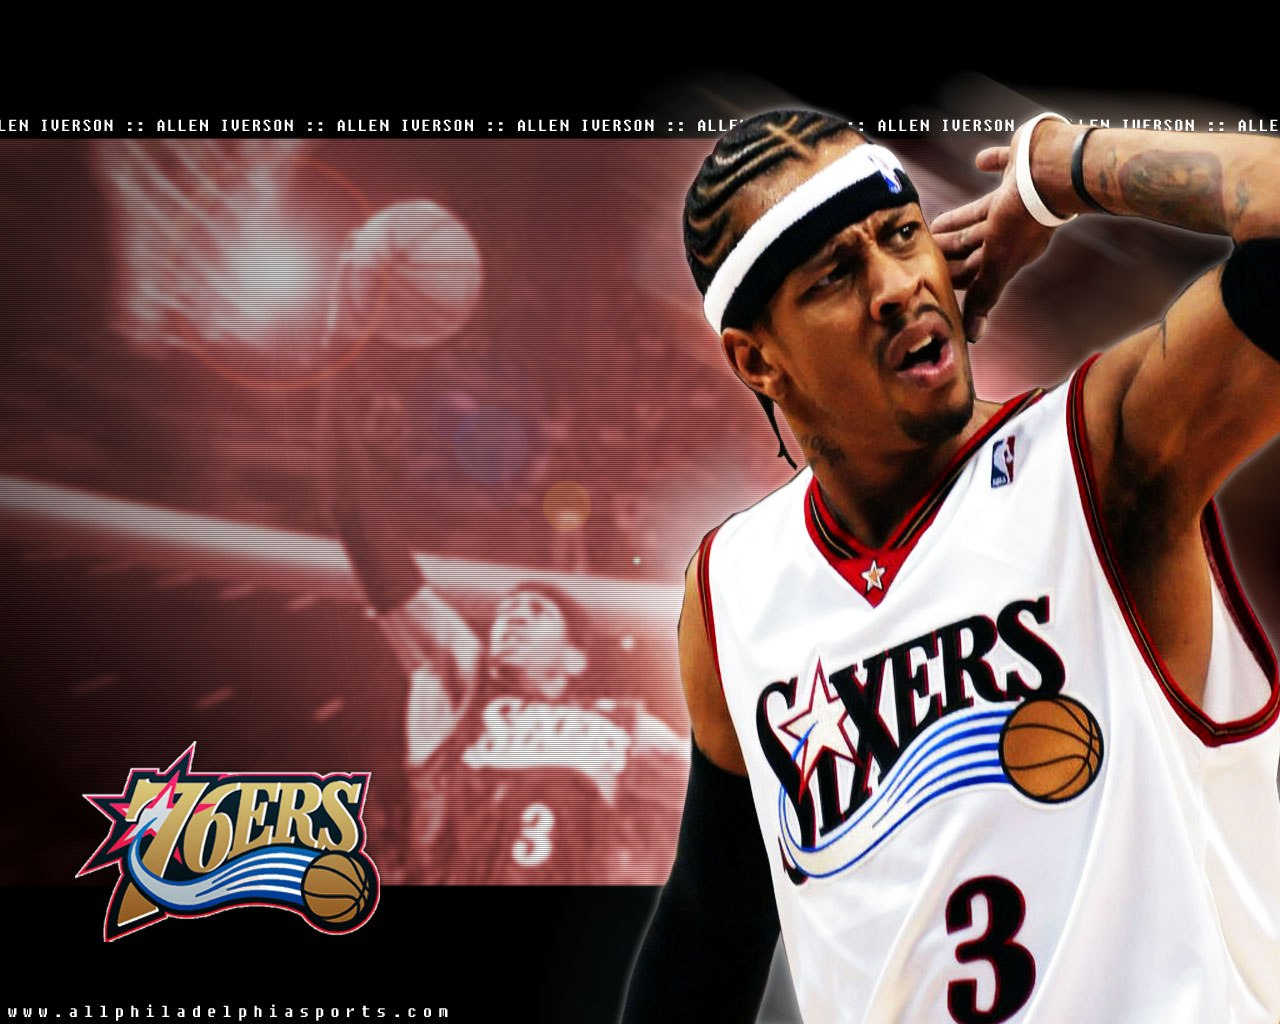 Allen Iverson Wallpaper Allen Iverson Philadelphia 76ers 1280x1024 Download Hd Wallpaper Wallpapertip